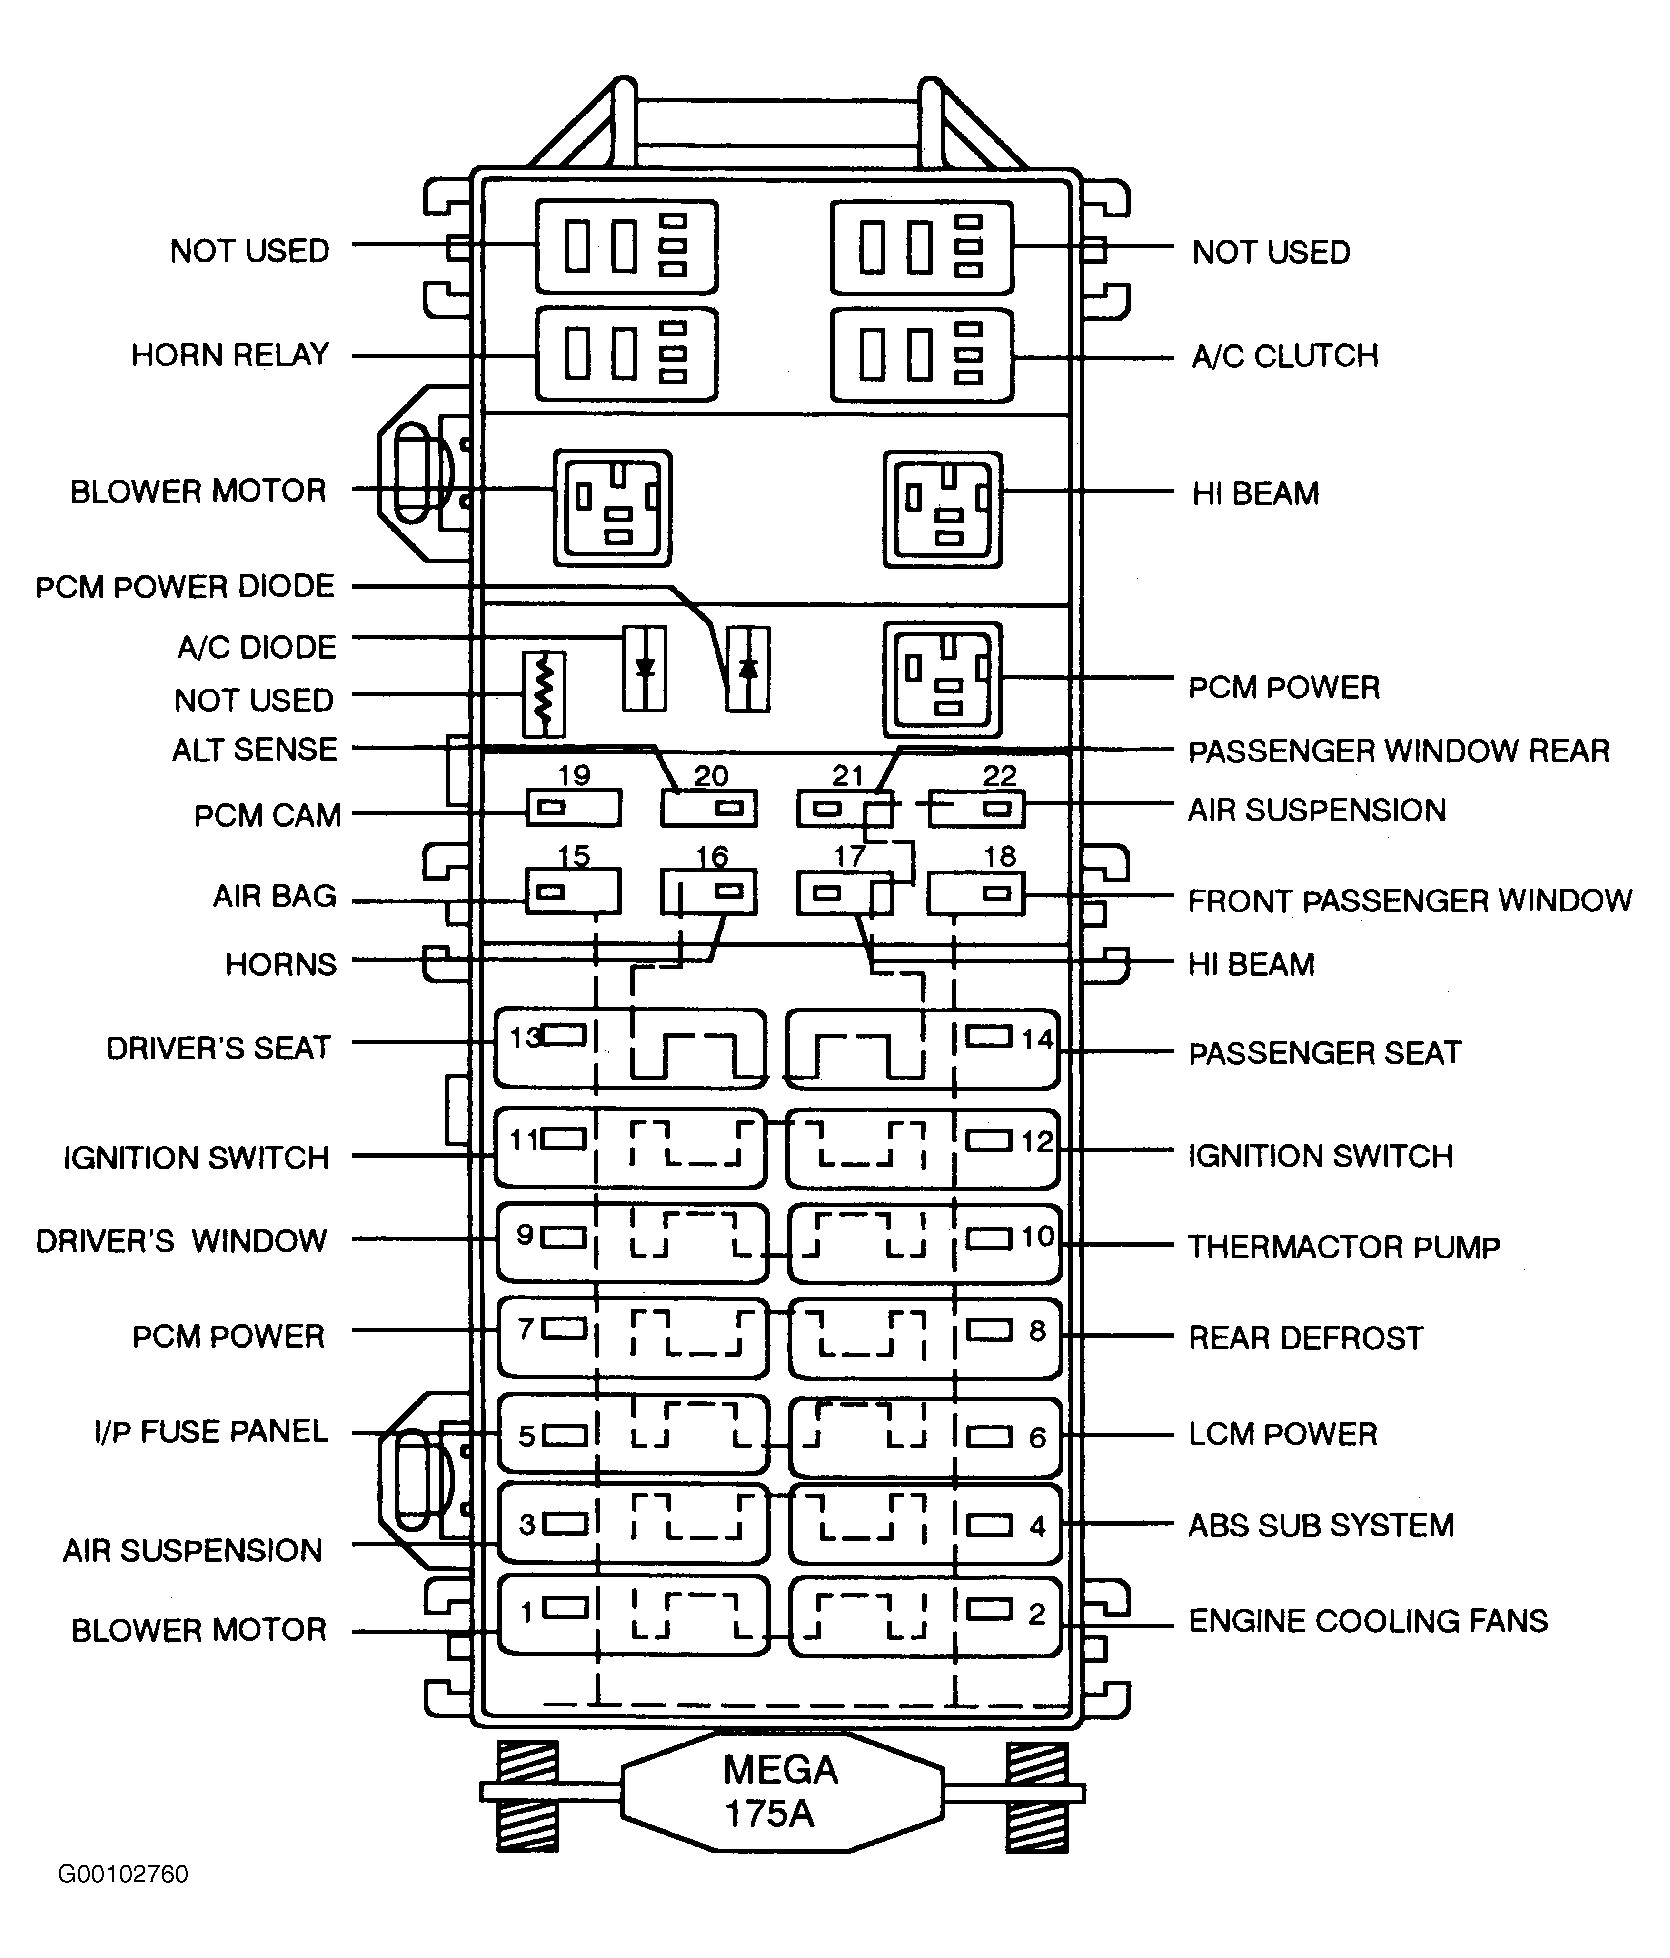 1998 lincoln continental fuse box diagram wiring diagrams schema rh 5 8 vbn hartmannphoto de  1997 lincoln continental fuse box location